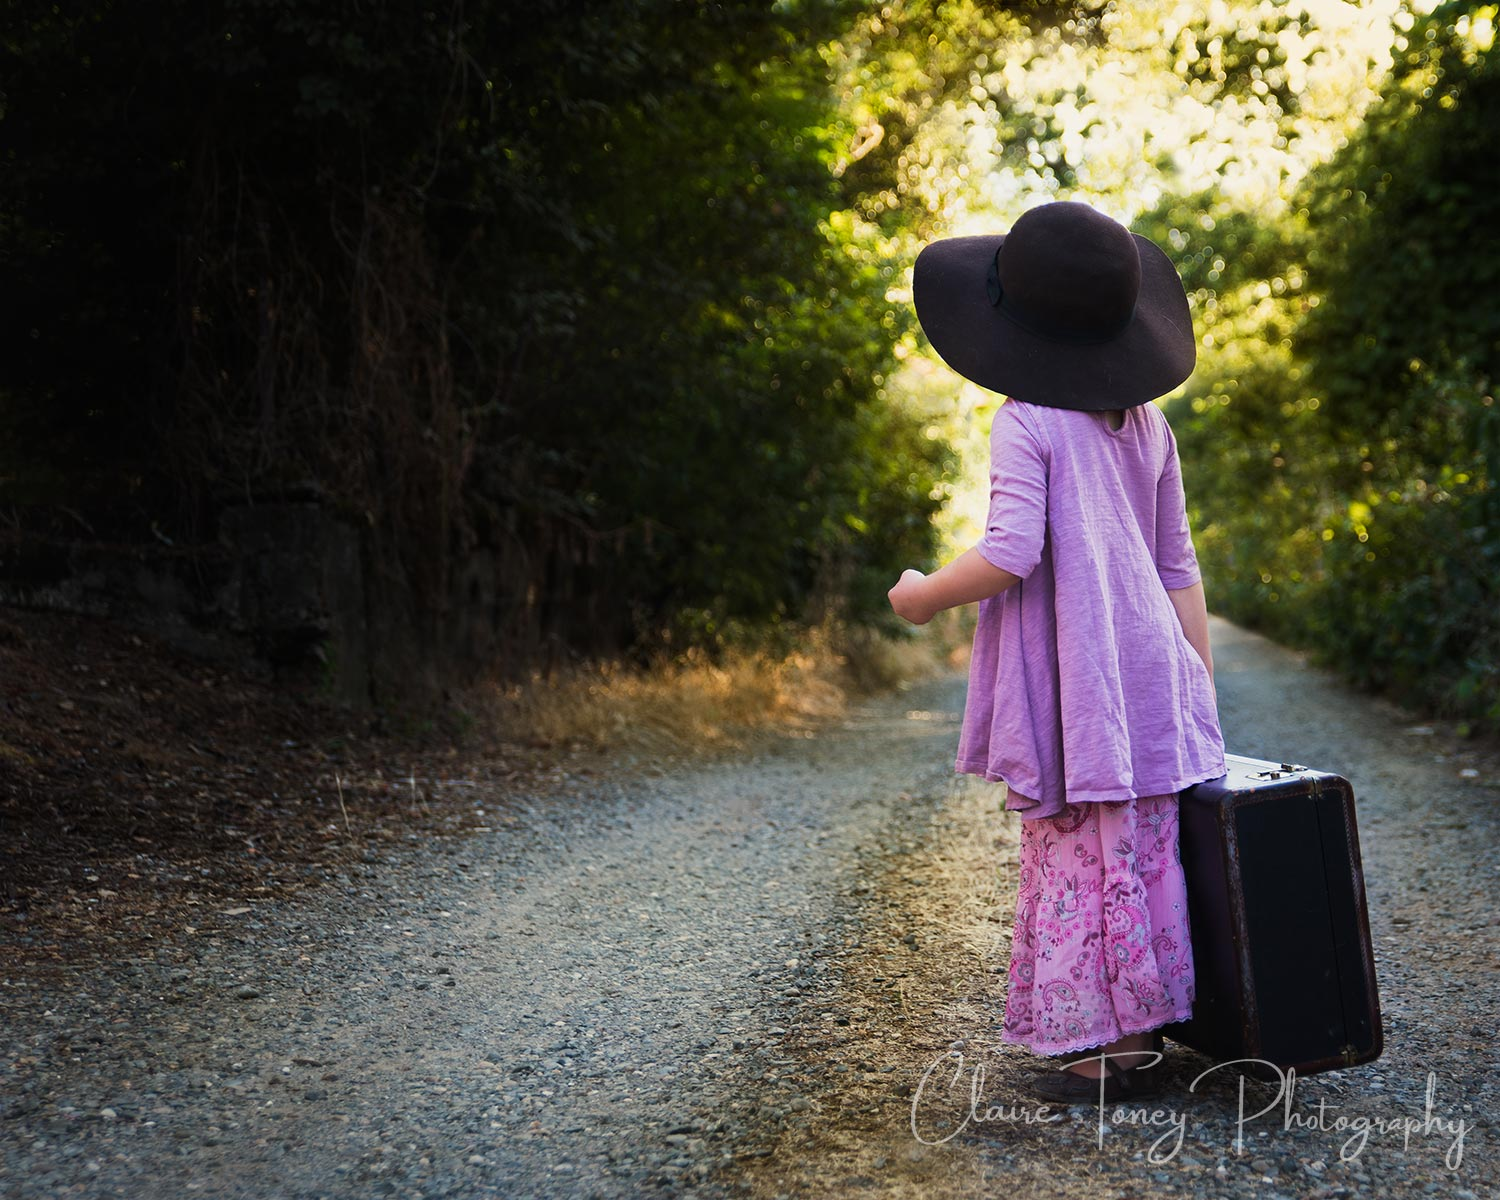 Little girl carrying a suitcase, wearing a hat, waiting.Claire Toney Photography, Sacramento Photographer